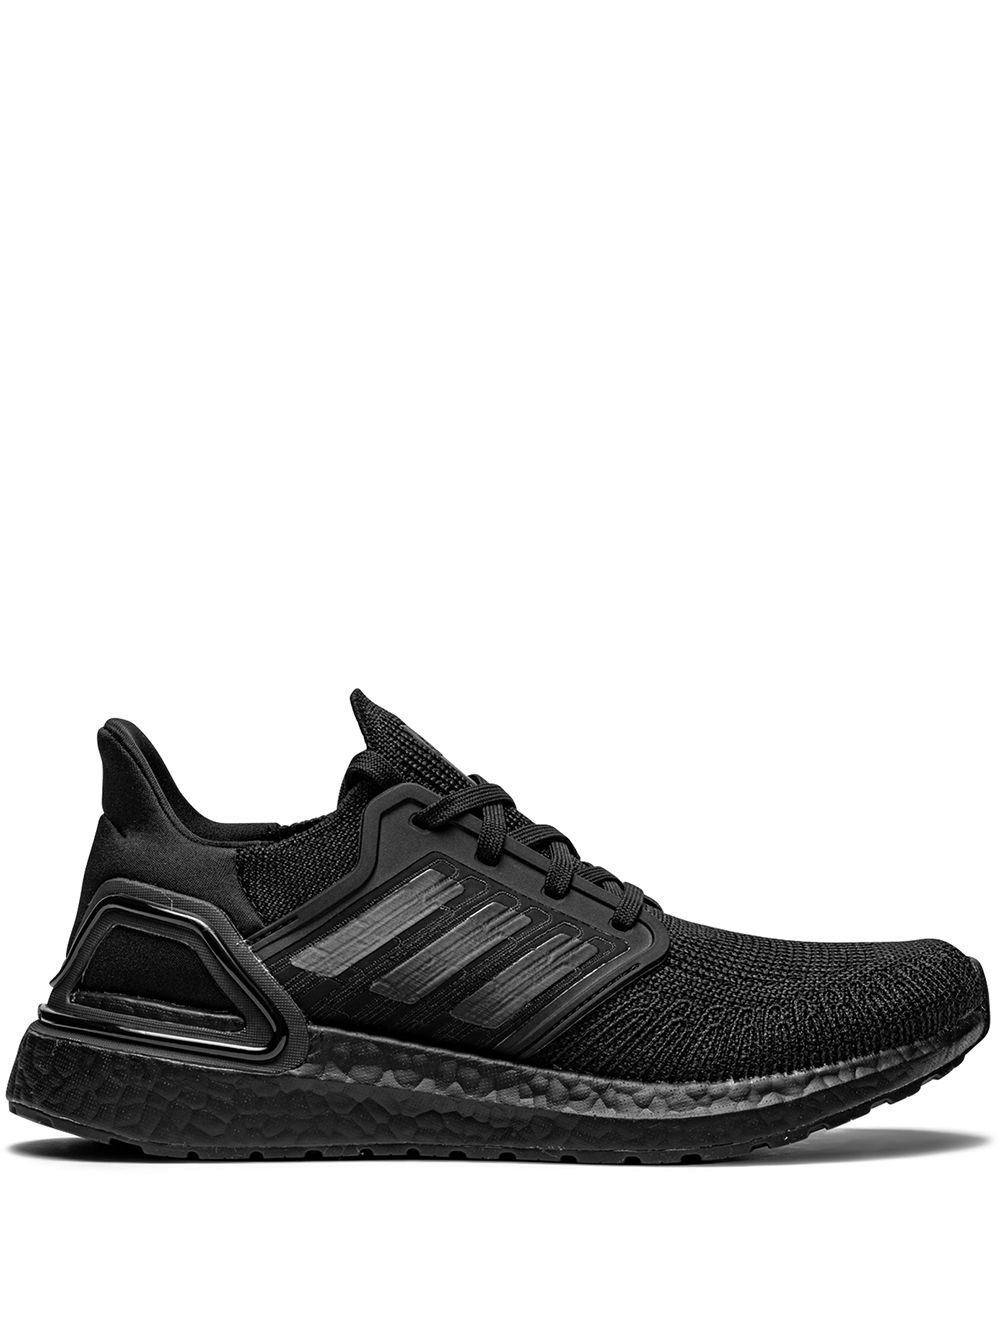 adidas UltraBoost 20 low-top sneakers - Black von adidas